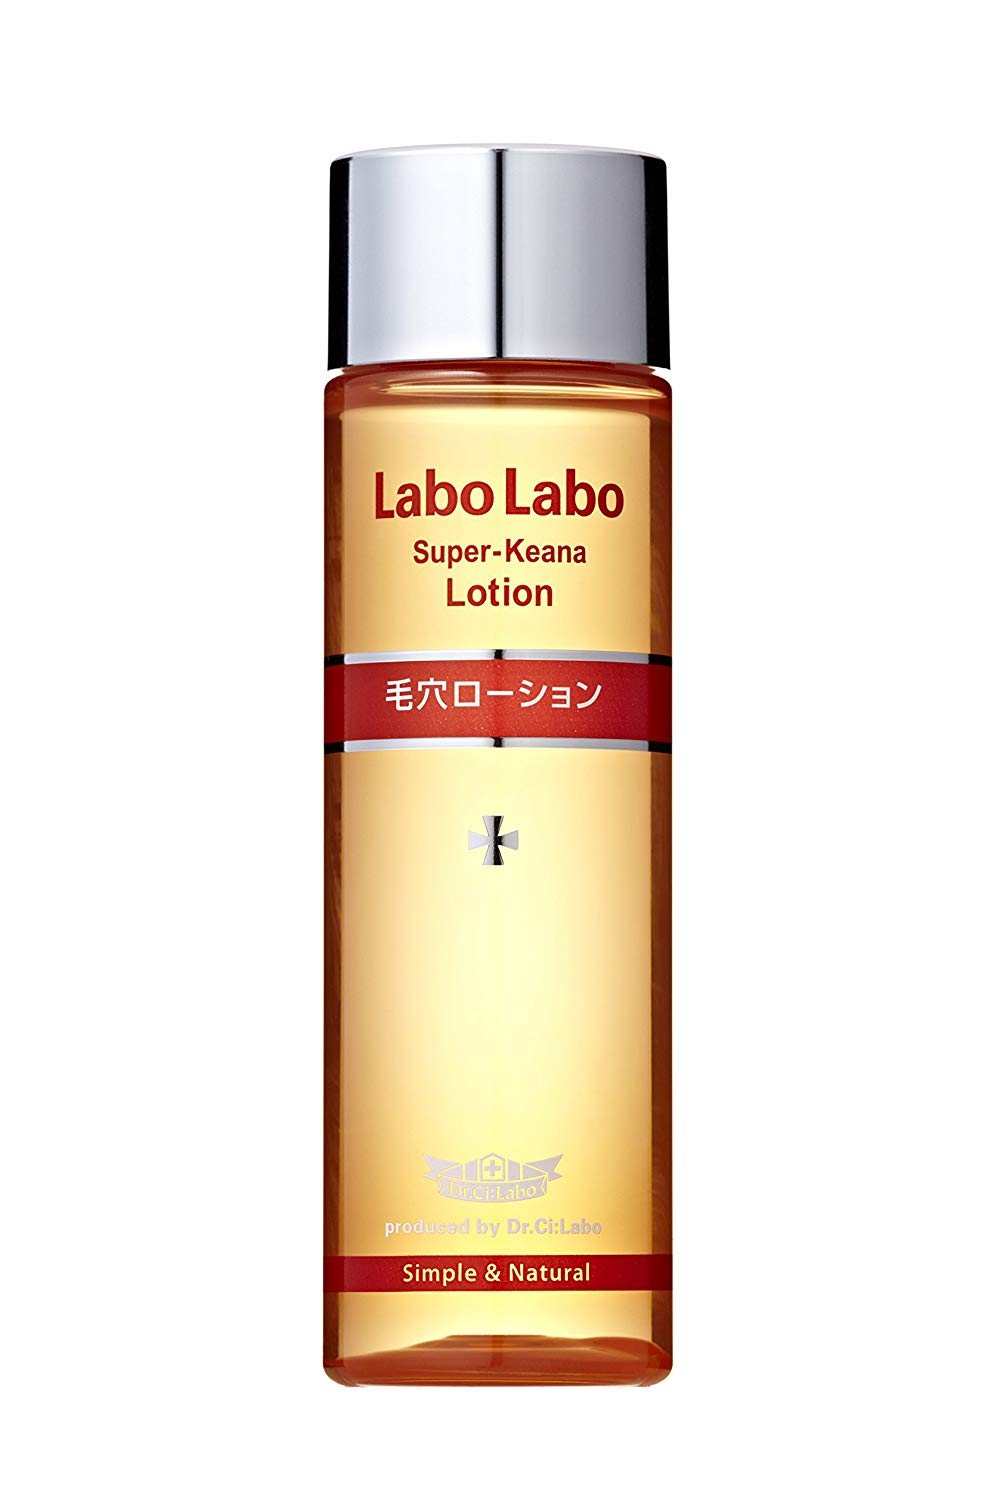 Labo Labo Super Pores Lotion